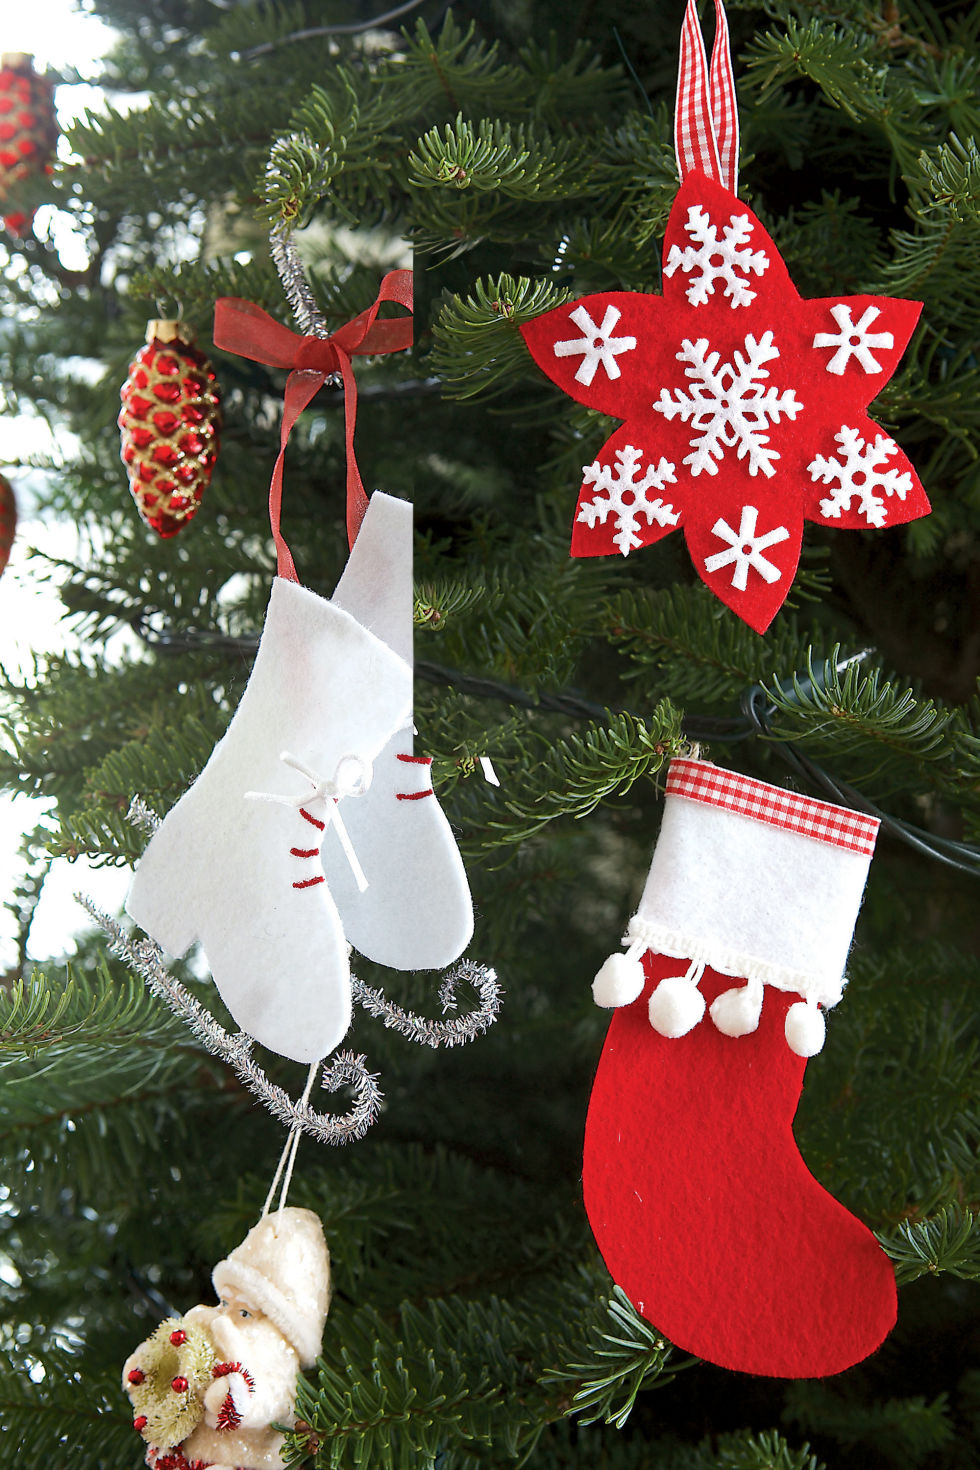 32 Homemade DIY Christmas Ornament Craft Ideas - How To Make Holiday  Ornaments